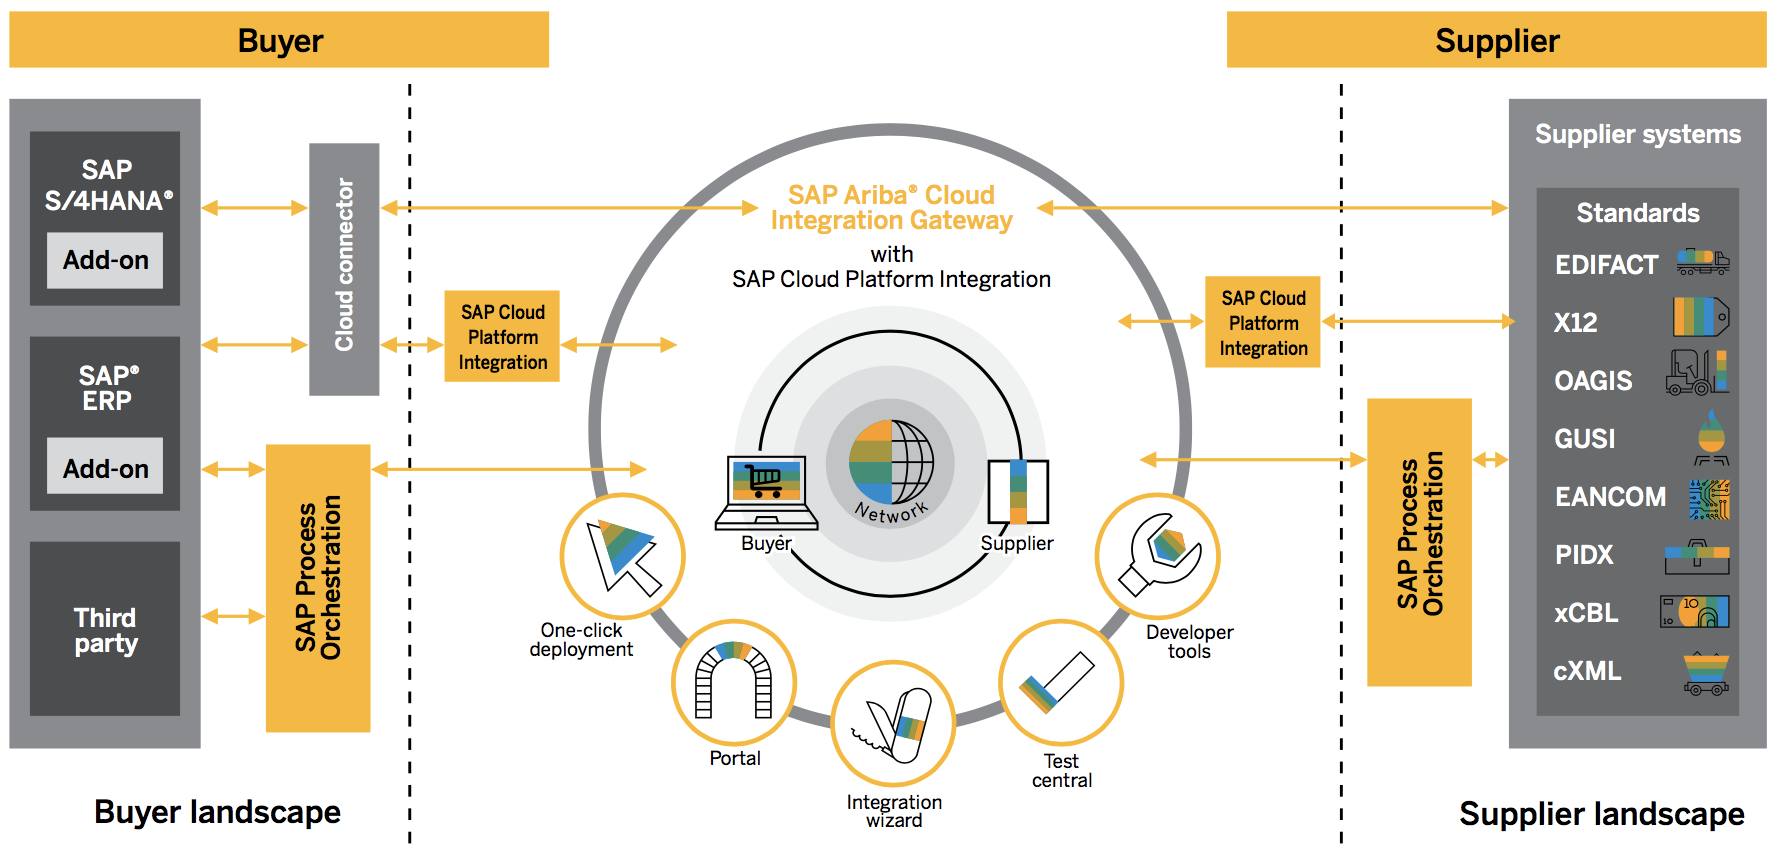 Ariba CIG Add-on Series: CIG Overview | SAP Blogs